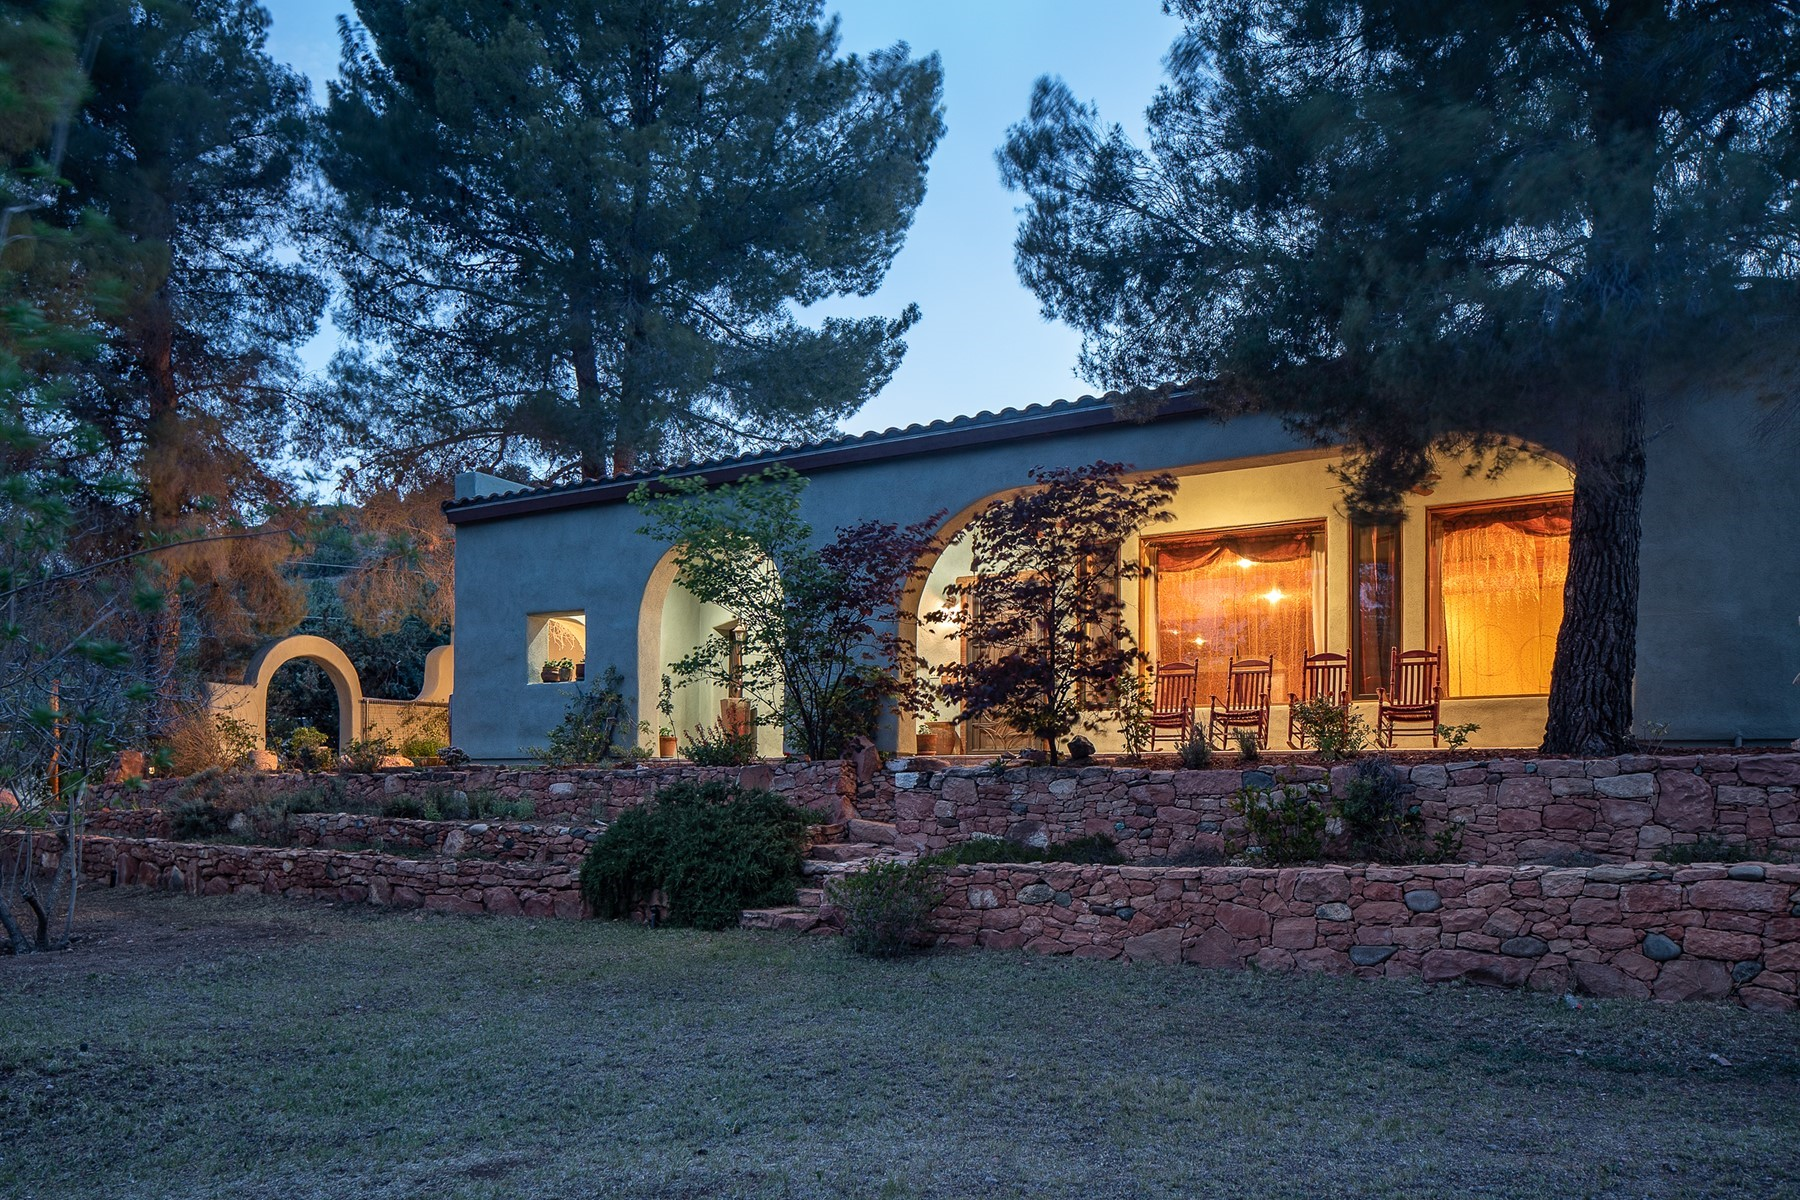 Single Family Homes for Sale at Peaceful Personal Retreat 2670/2680 N Page Springs Rd Cornville, Arizona 86325 United States